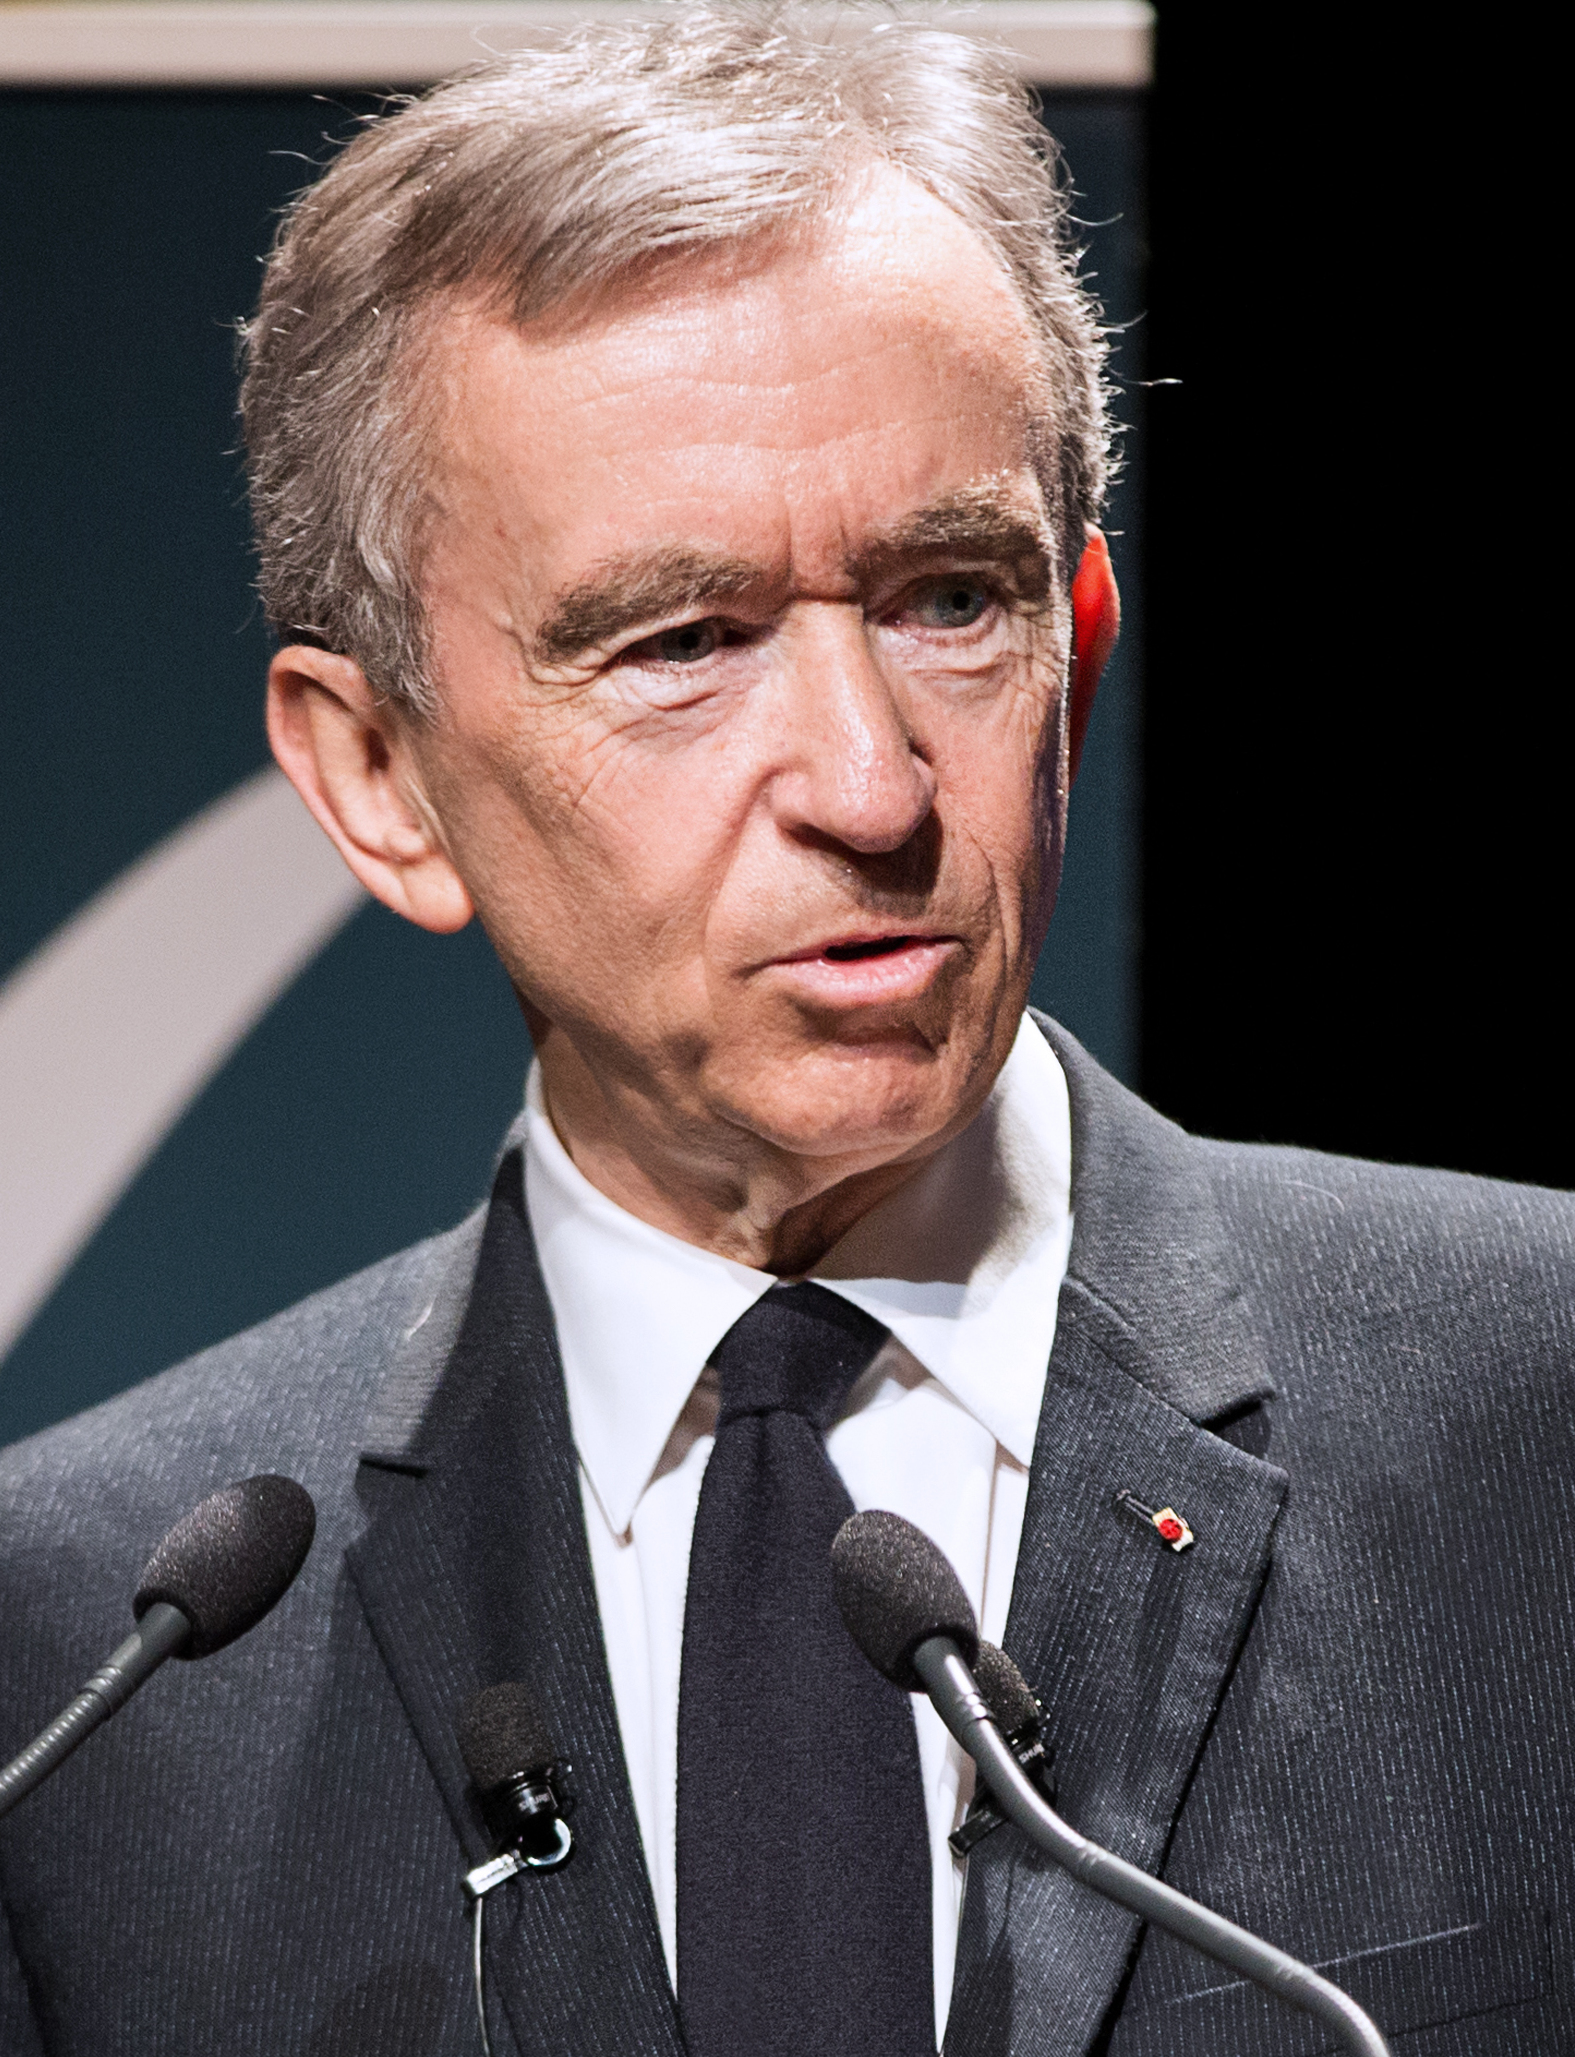 The 69-year old son of father Jean Arnault and mother(?) Bernard Arnault in 2018 photo. Bernard Arnault earned a  million dollar salary - leaving the net worth at 37000 million in 2018